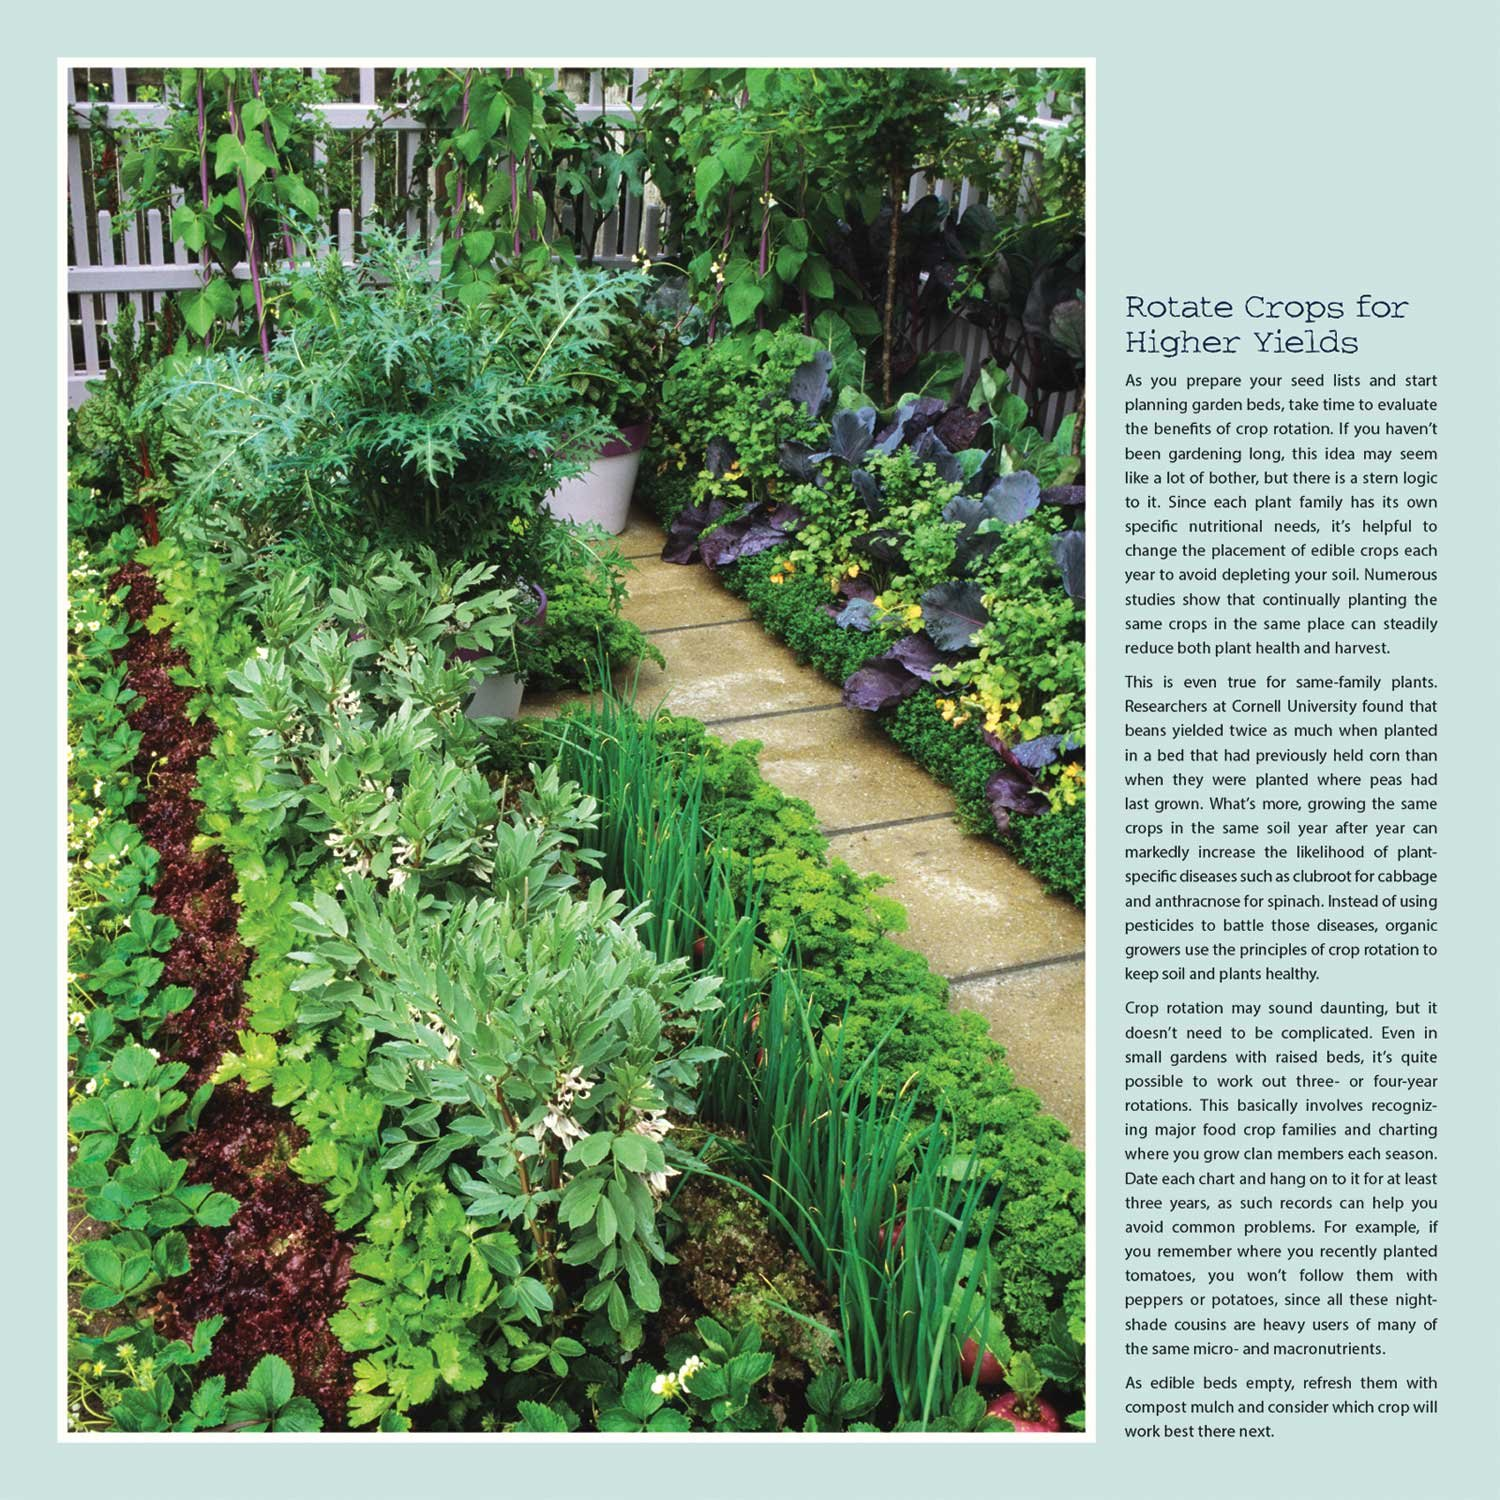 The Organic Kitchen Garden 2018 Wall Calendar: Recipes and Tips by Ann  Lovejoy: Ann Lovejoy, Amber Lotus Publishing: 0762109029275: Amazon.com:  Books